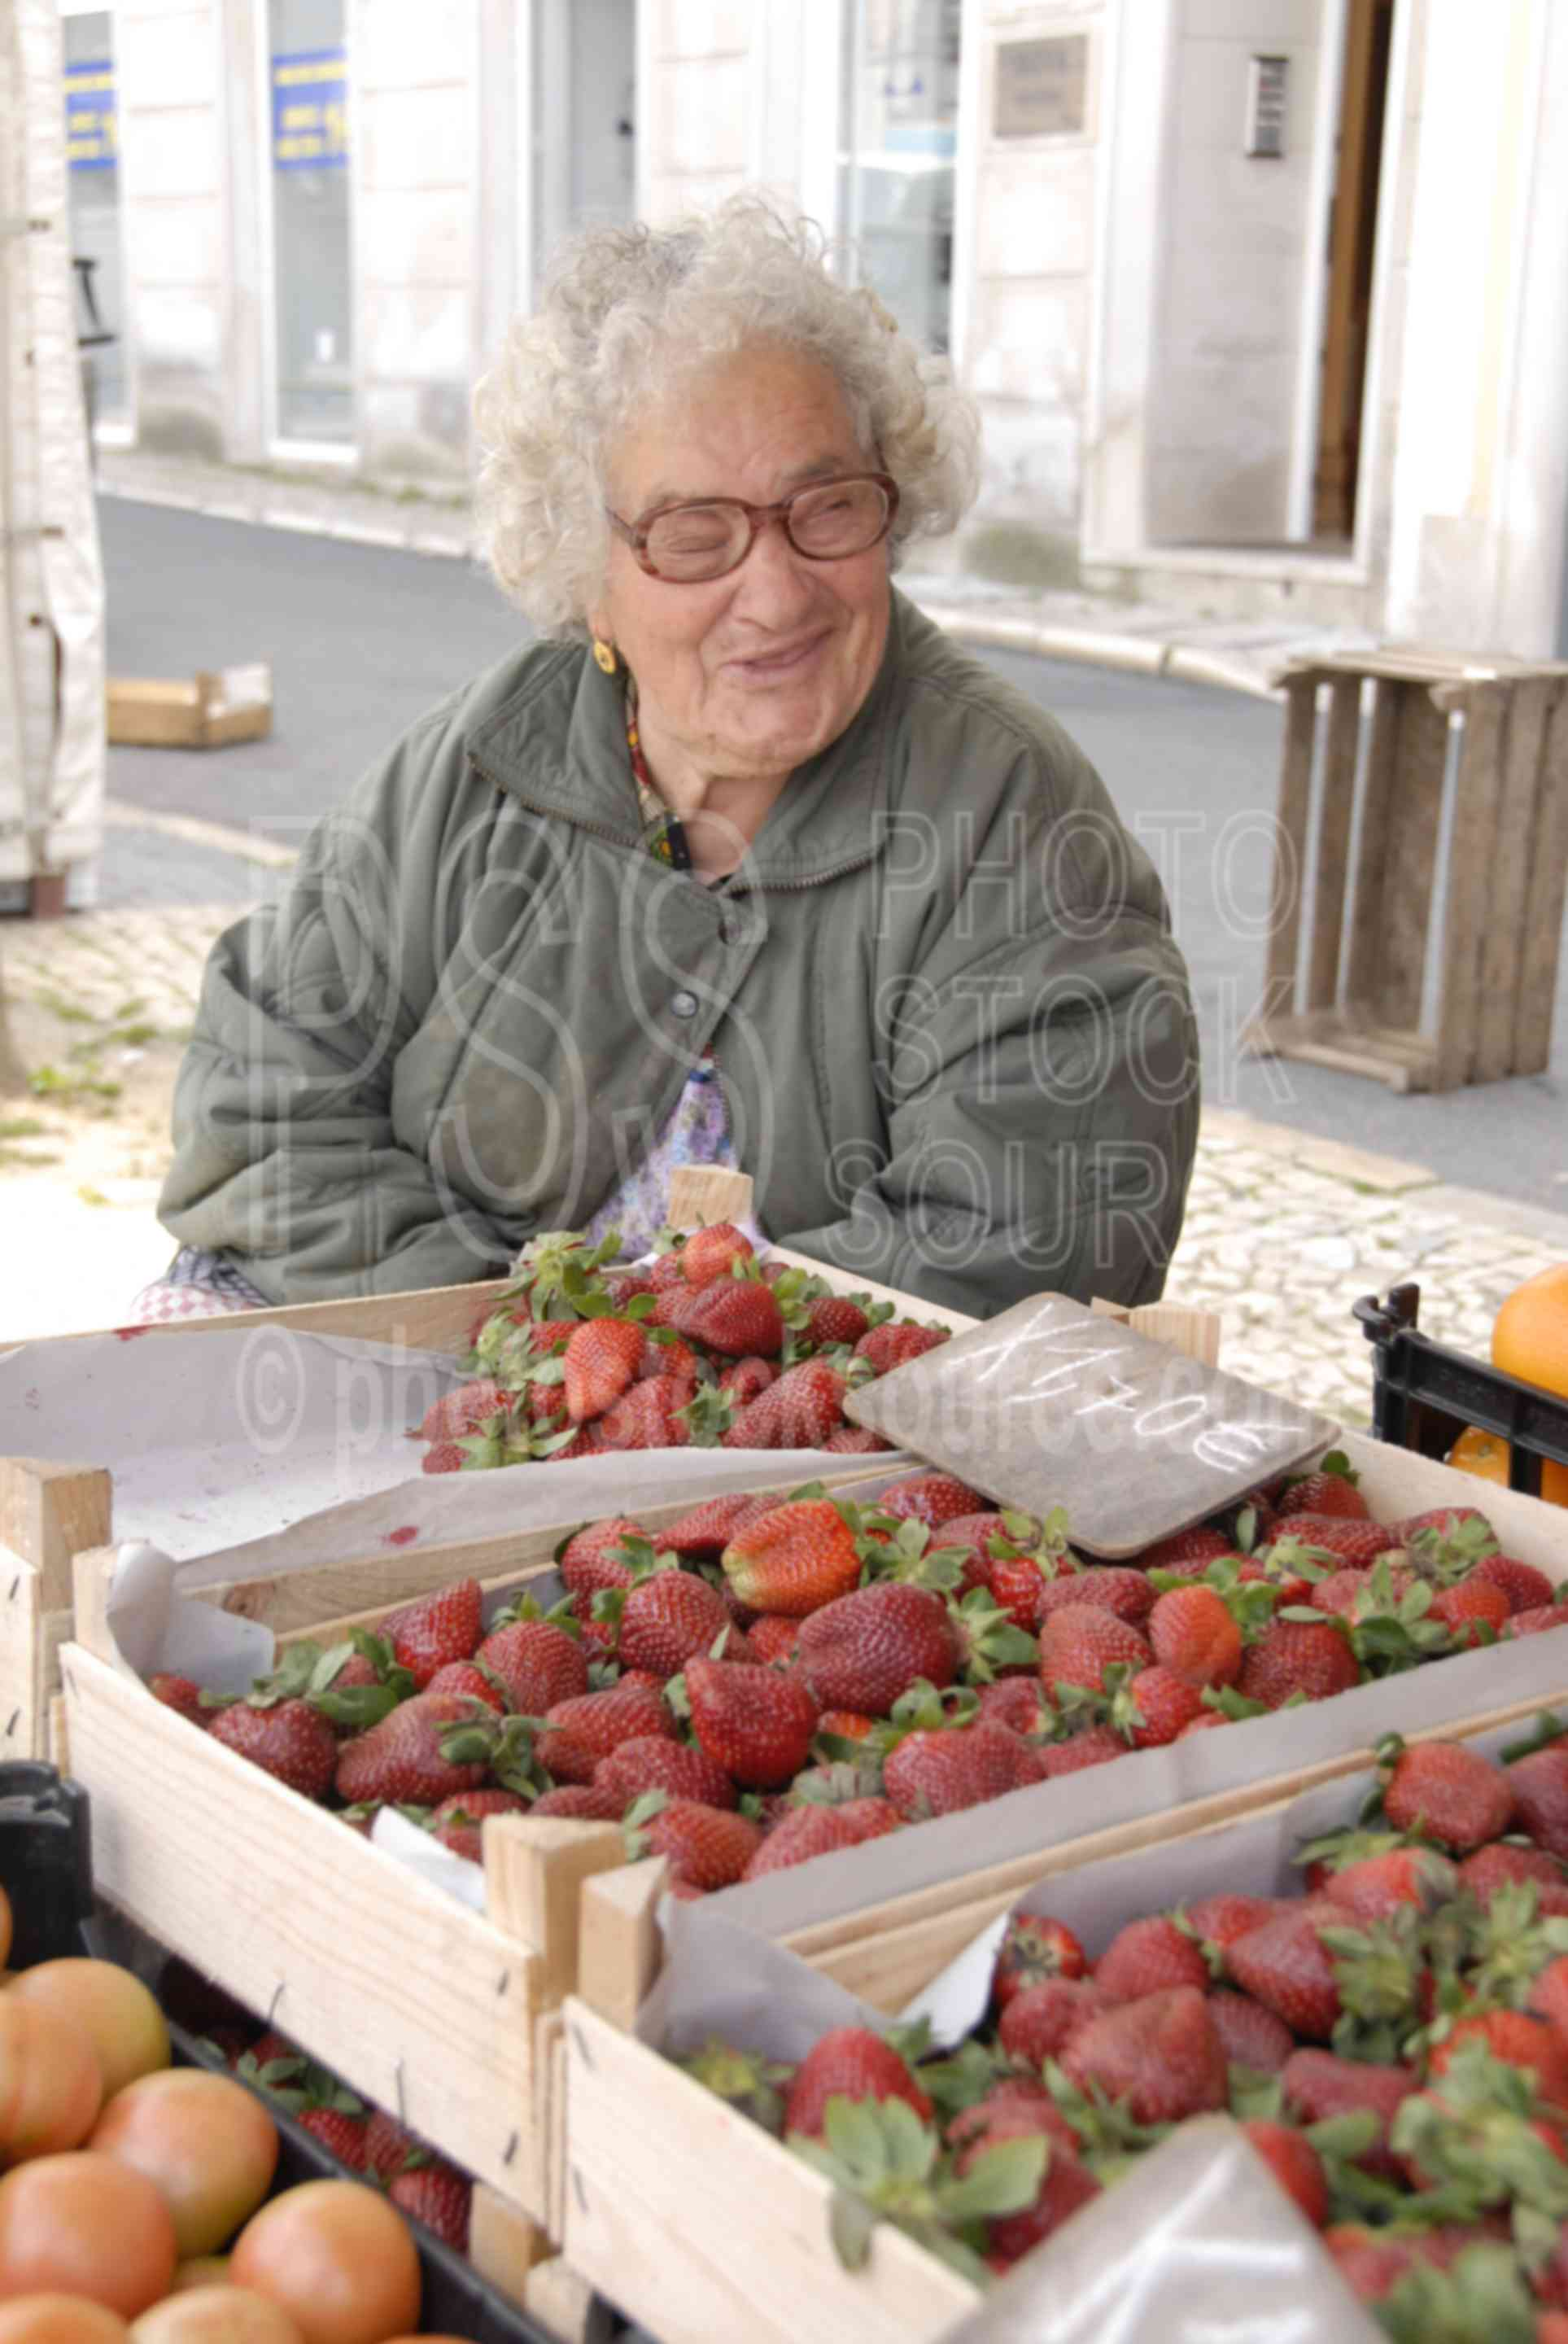 Selling Strawberries,strawberry,strawberries,old lady,lady,fruit,food,seller,vendor,market,mercado das caldas